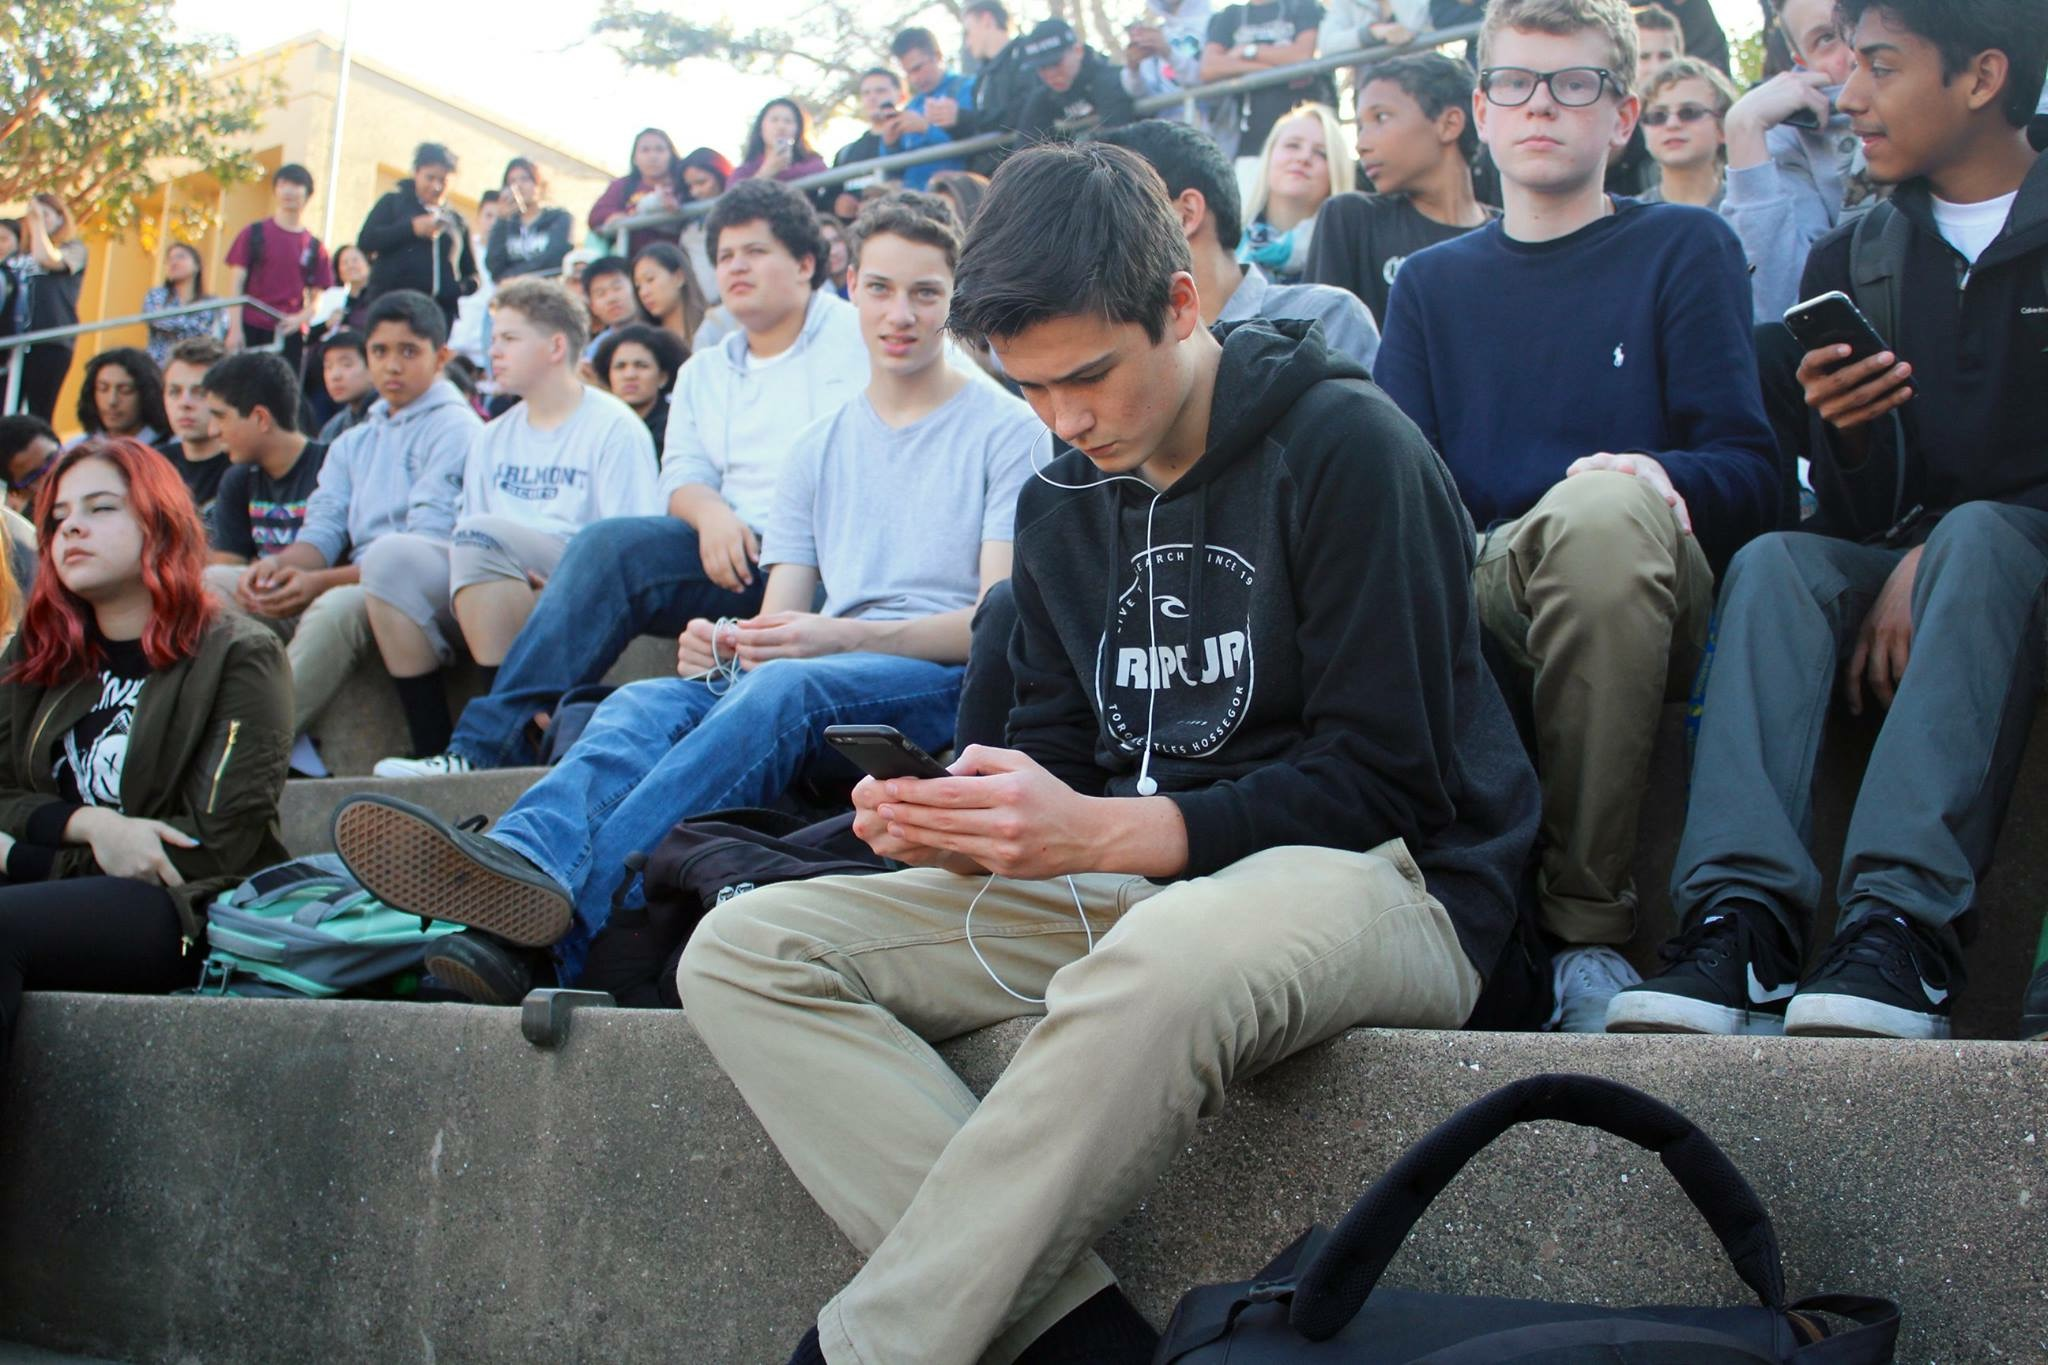 While some students participated in the protest,  others saw it as an easy way to get out of class because of the lenient attendance policy.